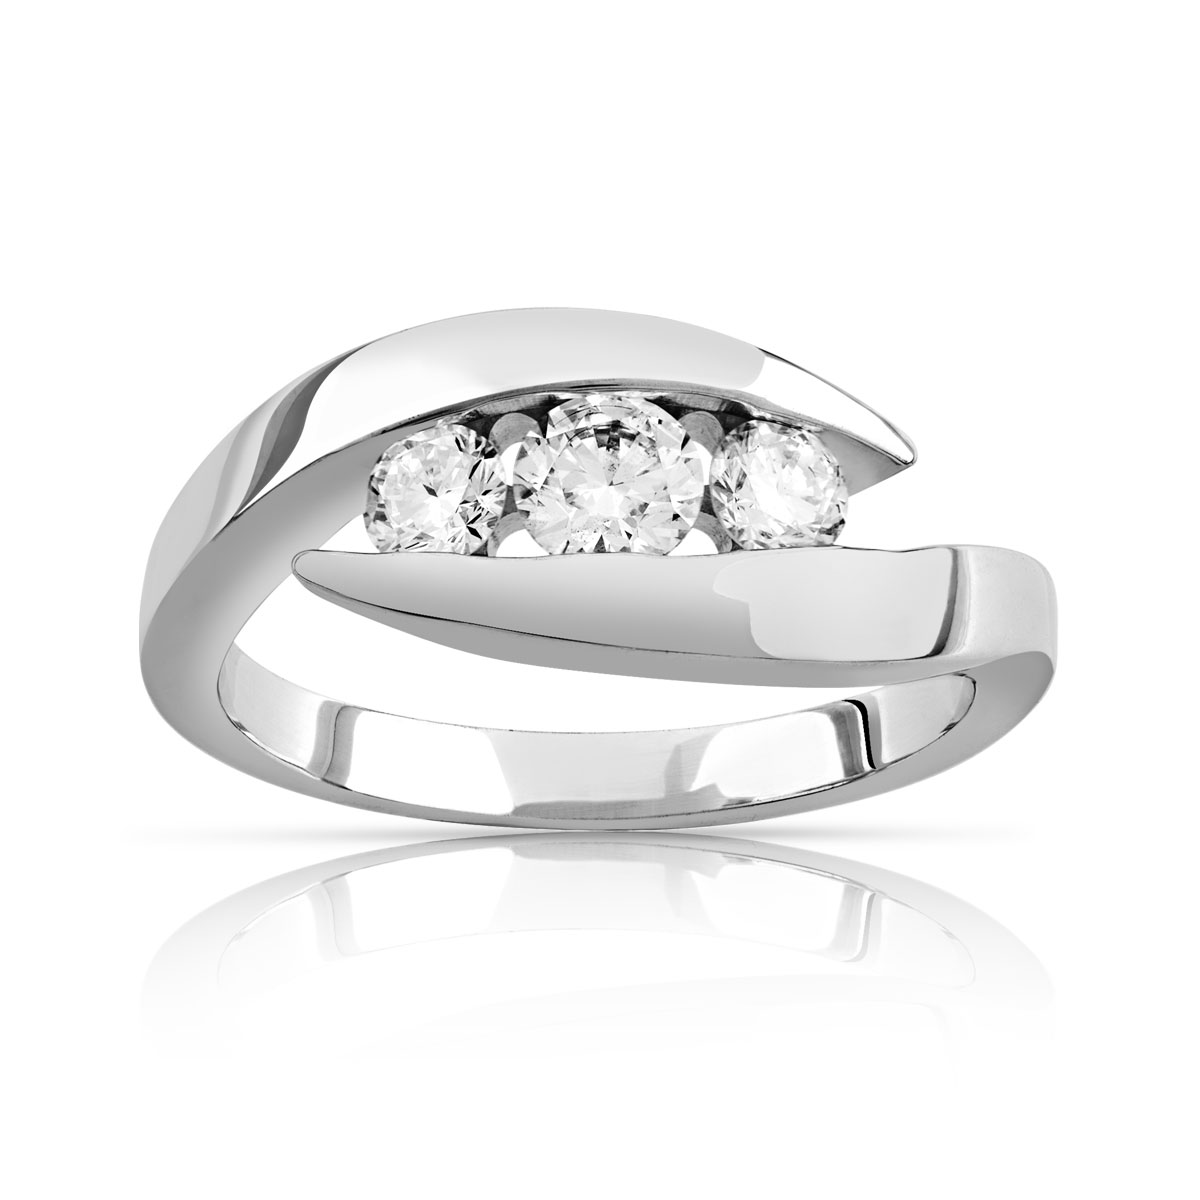 Bague Trilogy or 750 blanc diamant - vue 1